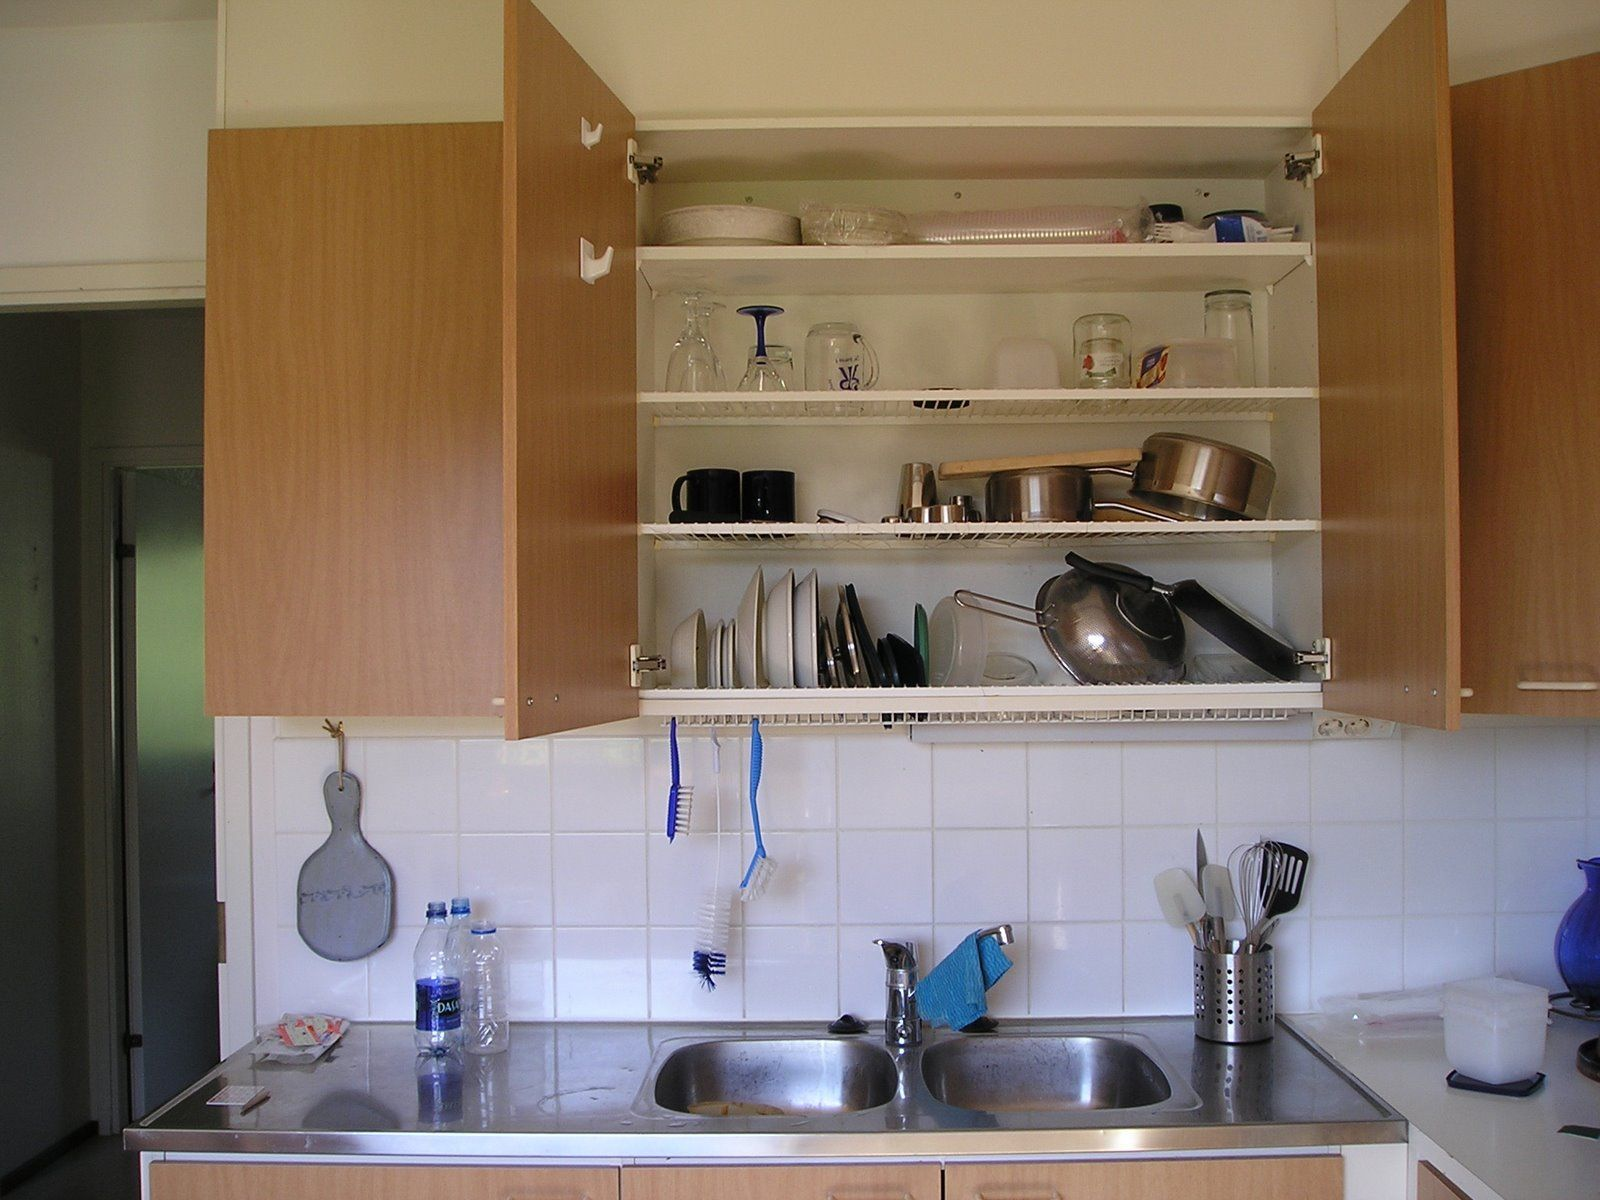 Finnish Concealed Dish Drying Cabinet Or